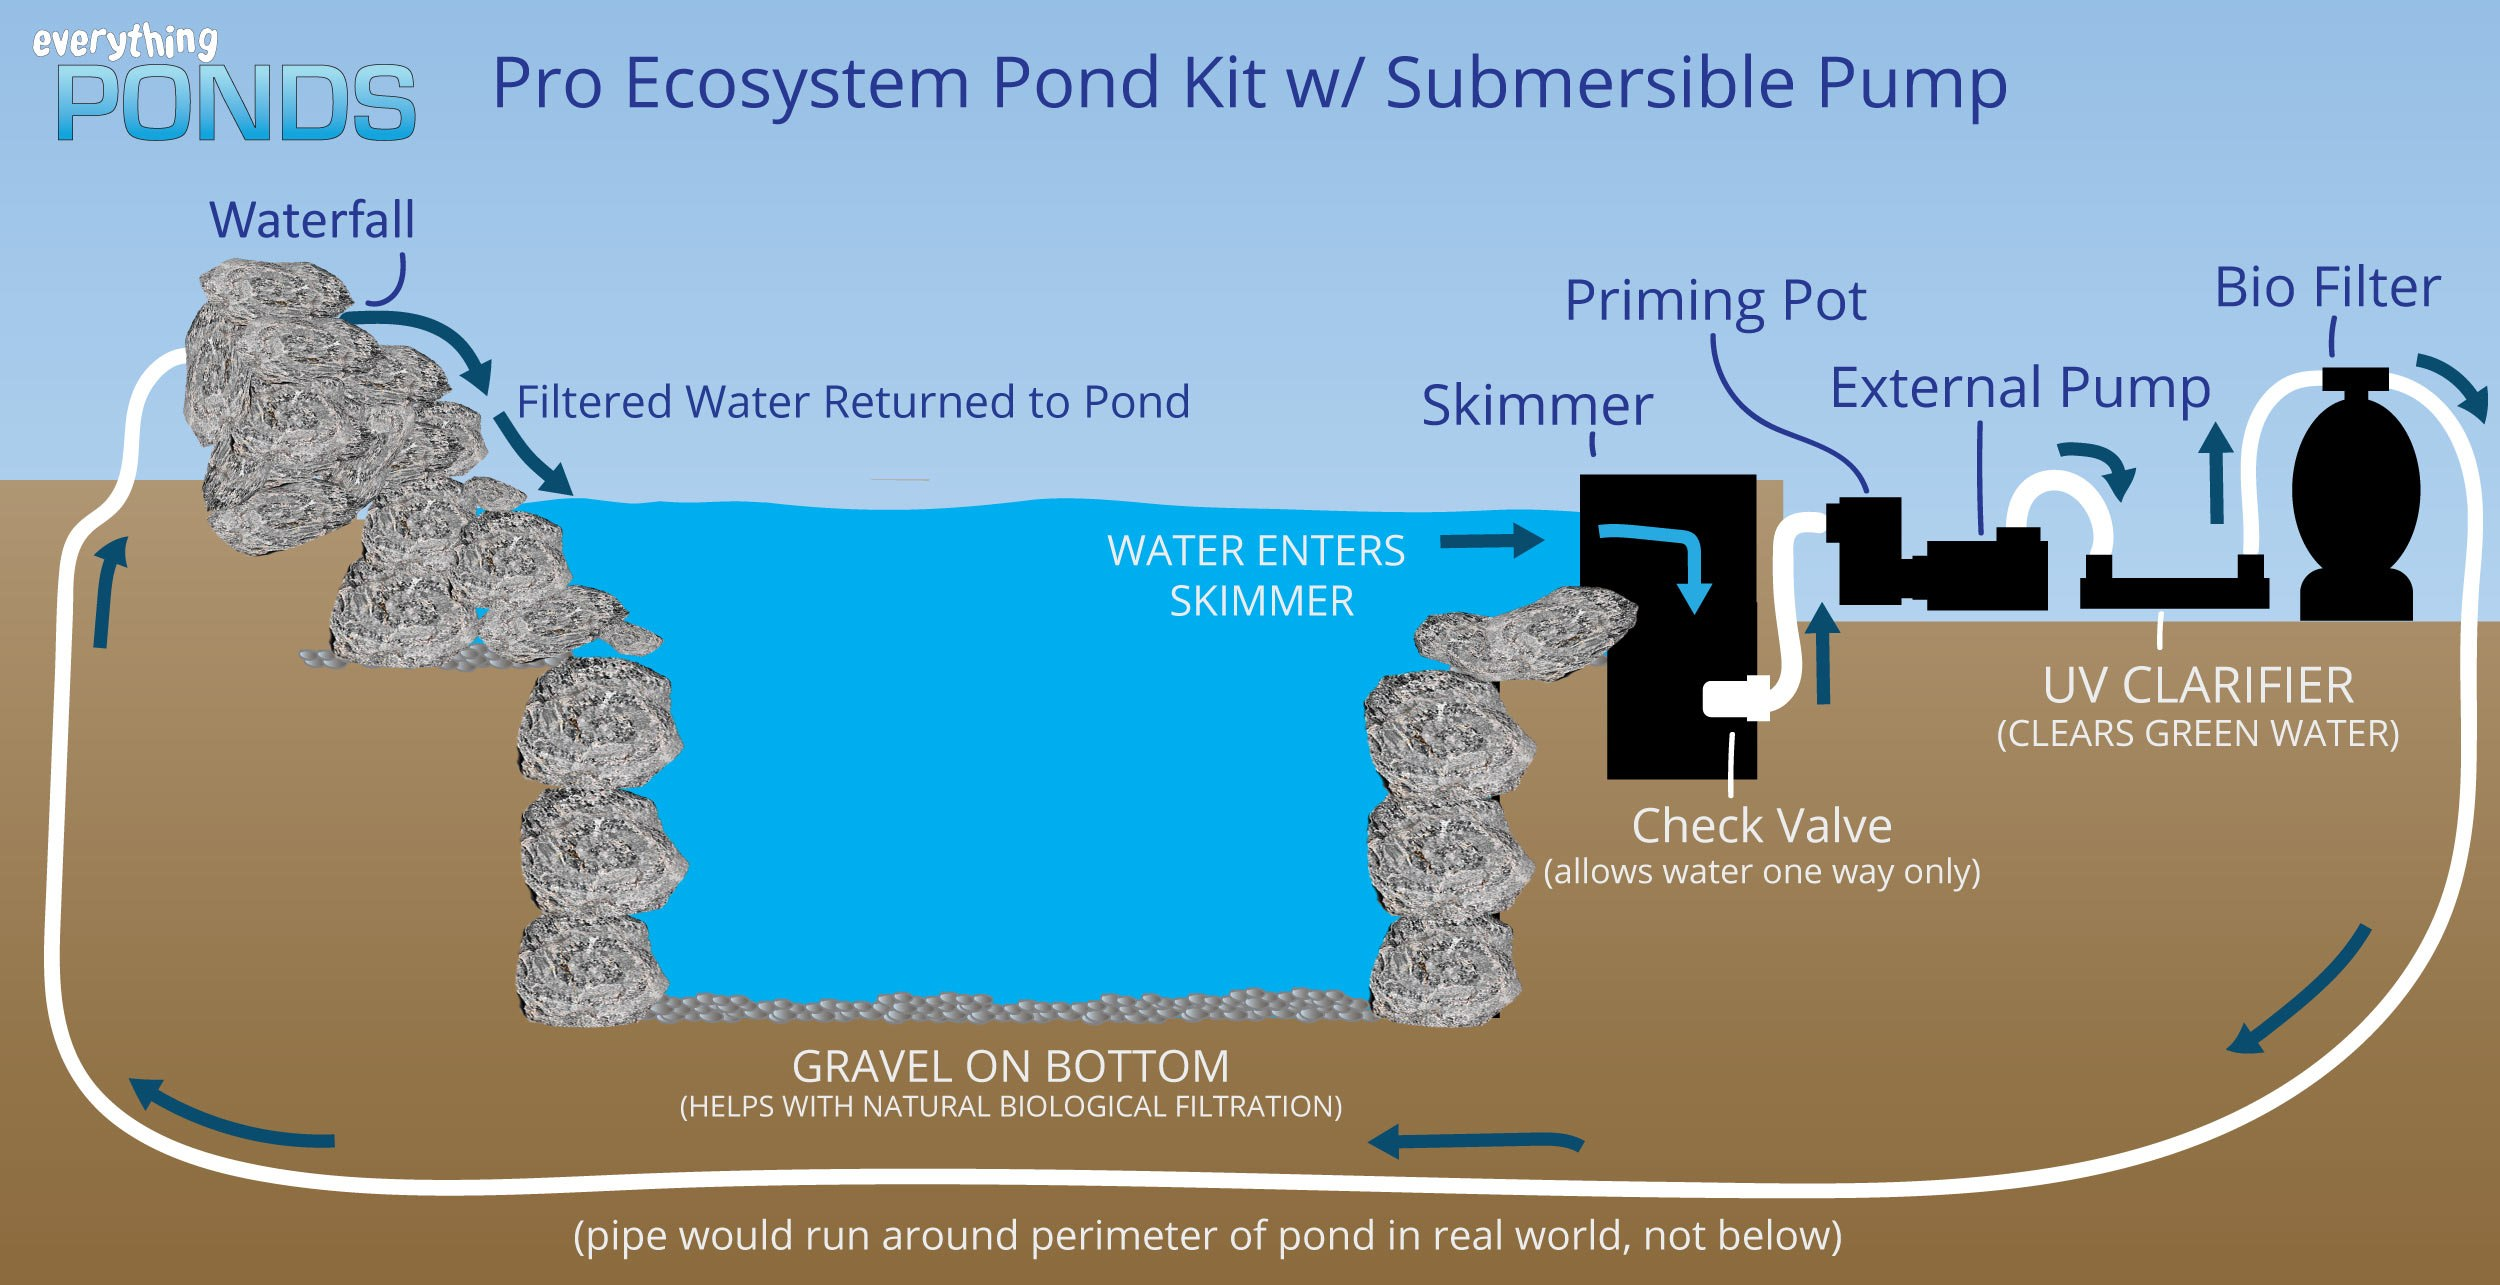 Pro Ecosystem Pond Kit w/ External Pump, 2' Falls, 1500 gph